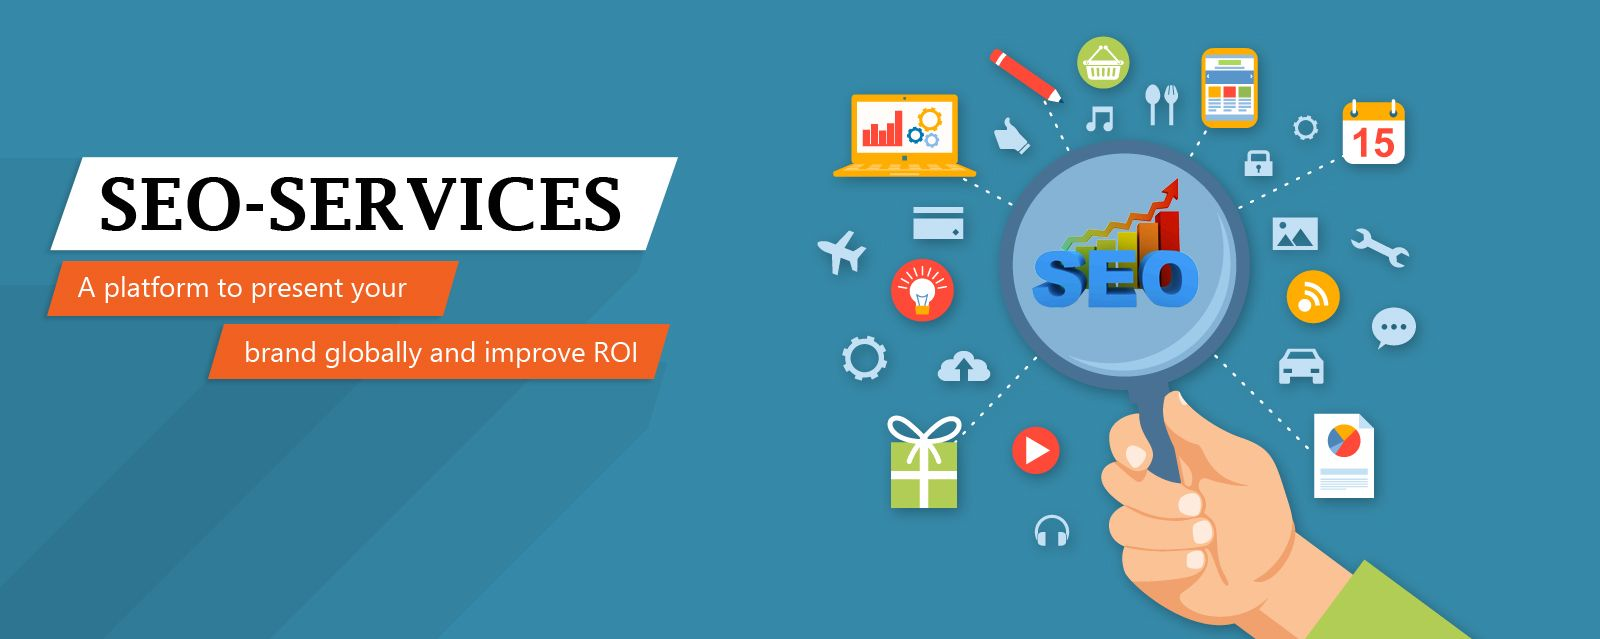 Search Engine Optimization Seo Company In London On In 2020 With Images Seo Services Company Seo Company Seo Services